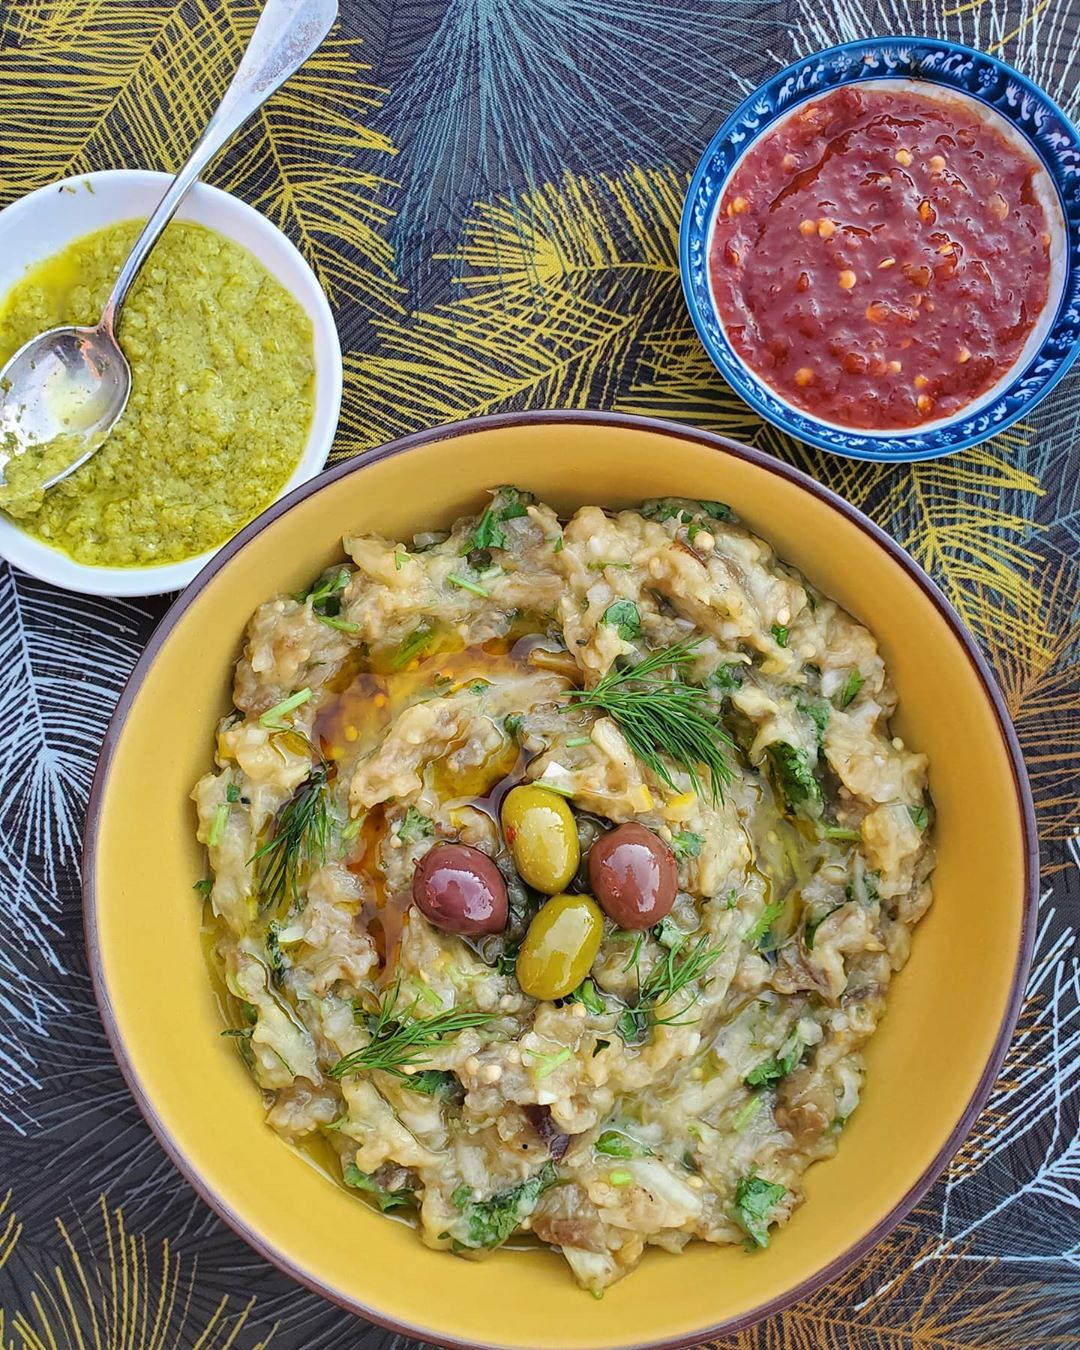 nutritious and easy to make this smoked eggplant mash is a display image  910657cf